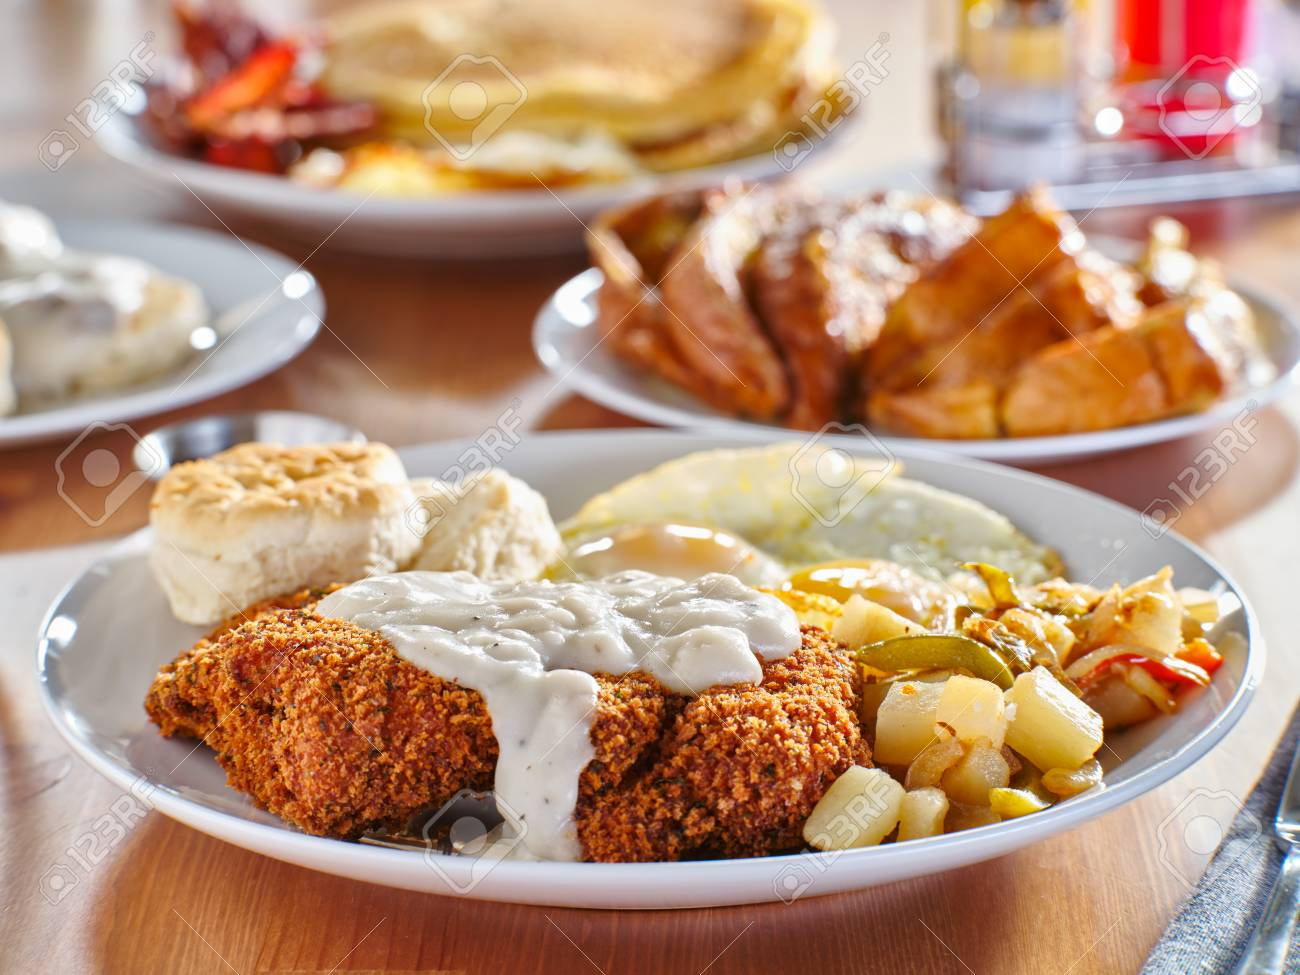 Chicken Fried Steak Covered In Gravy With Sunny Side Up Eggs